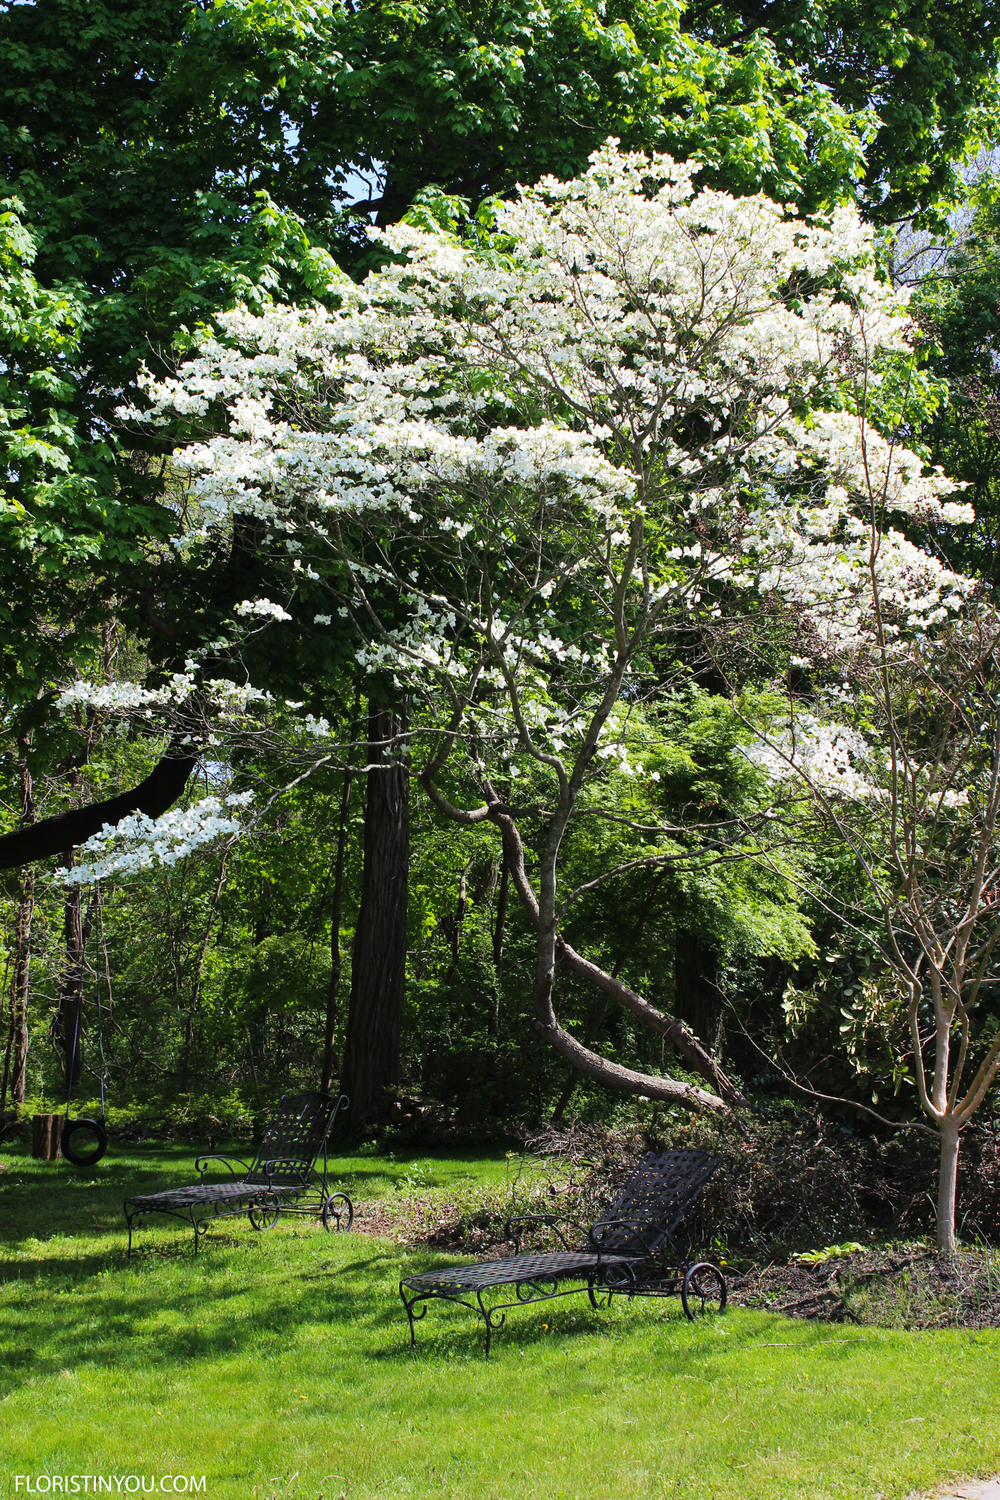 Next to the maple was a dogwood tree in bloom.